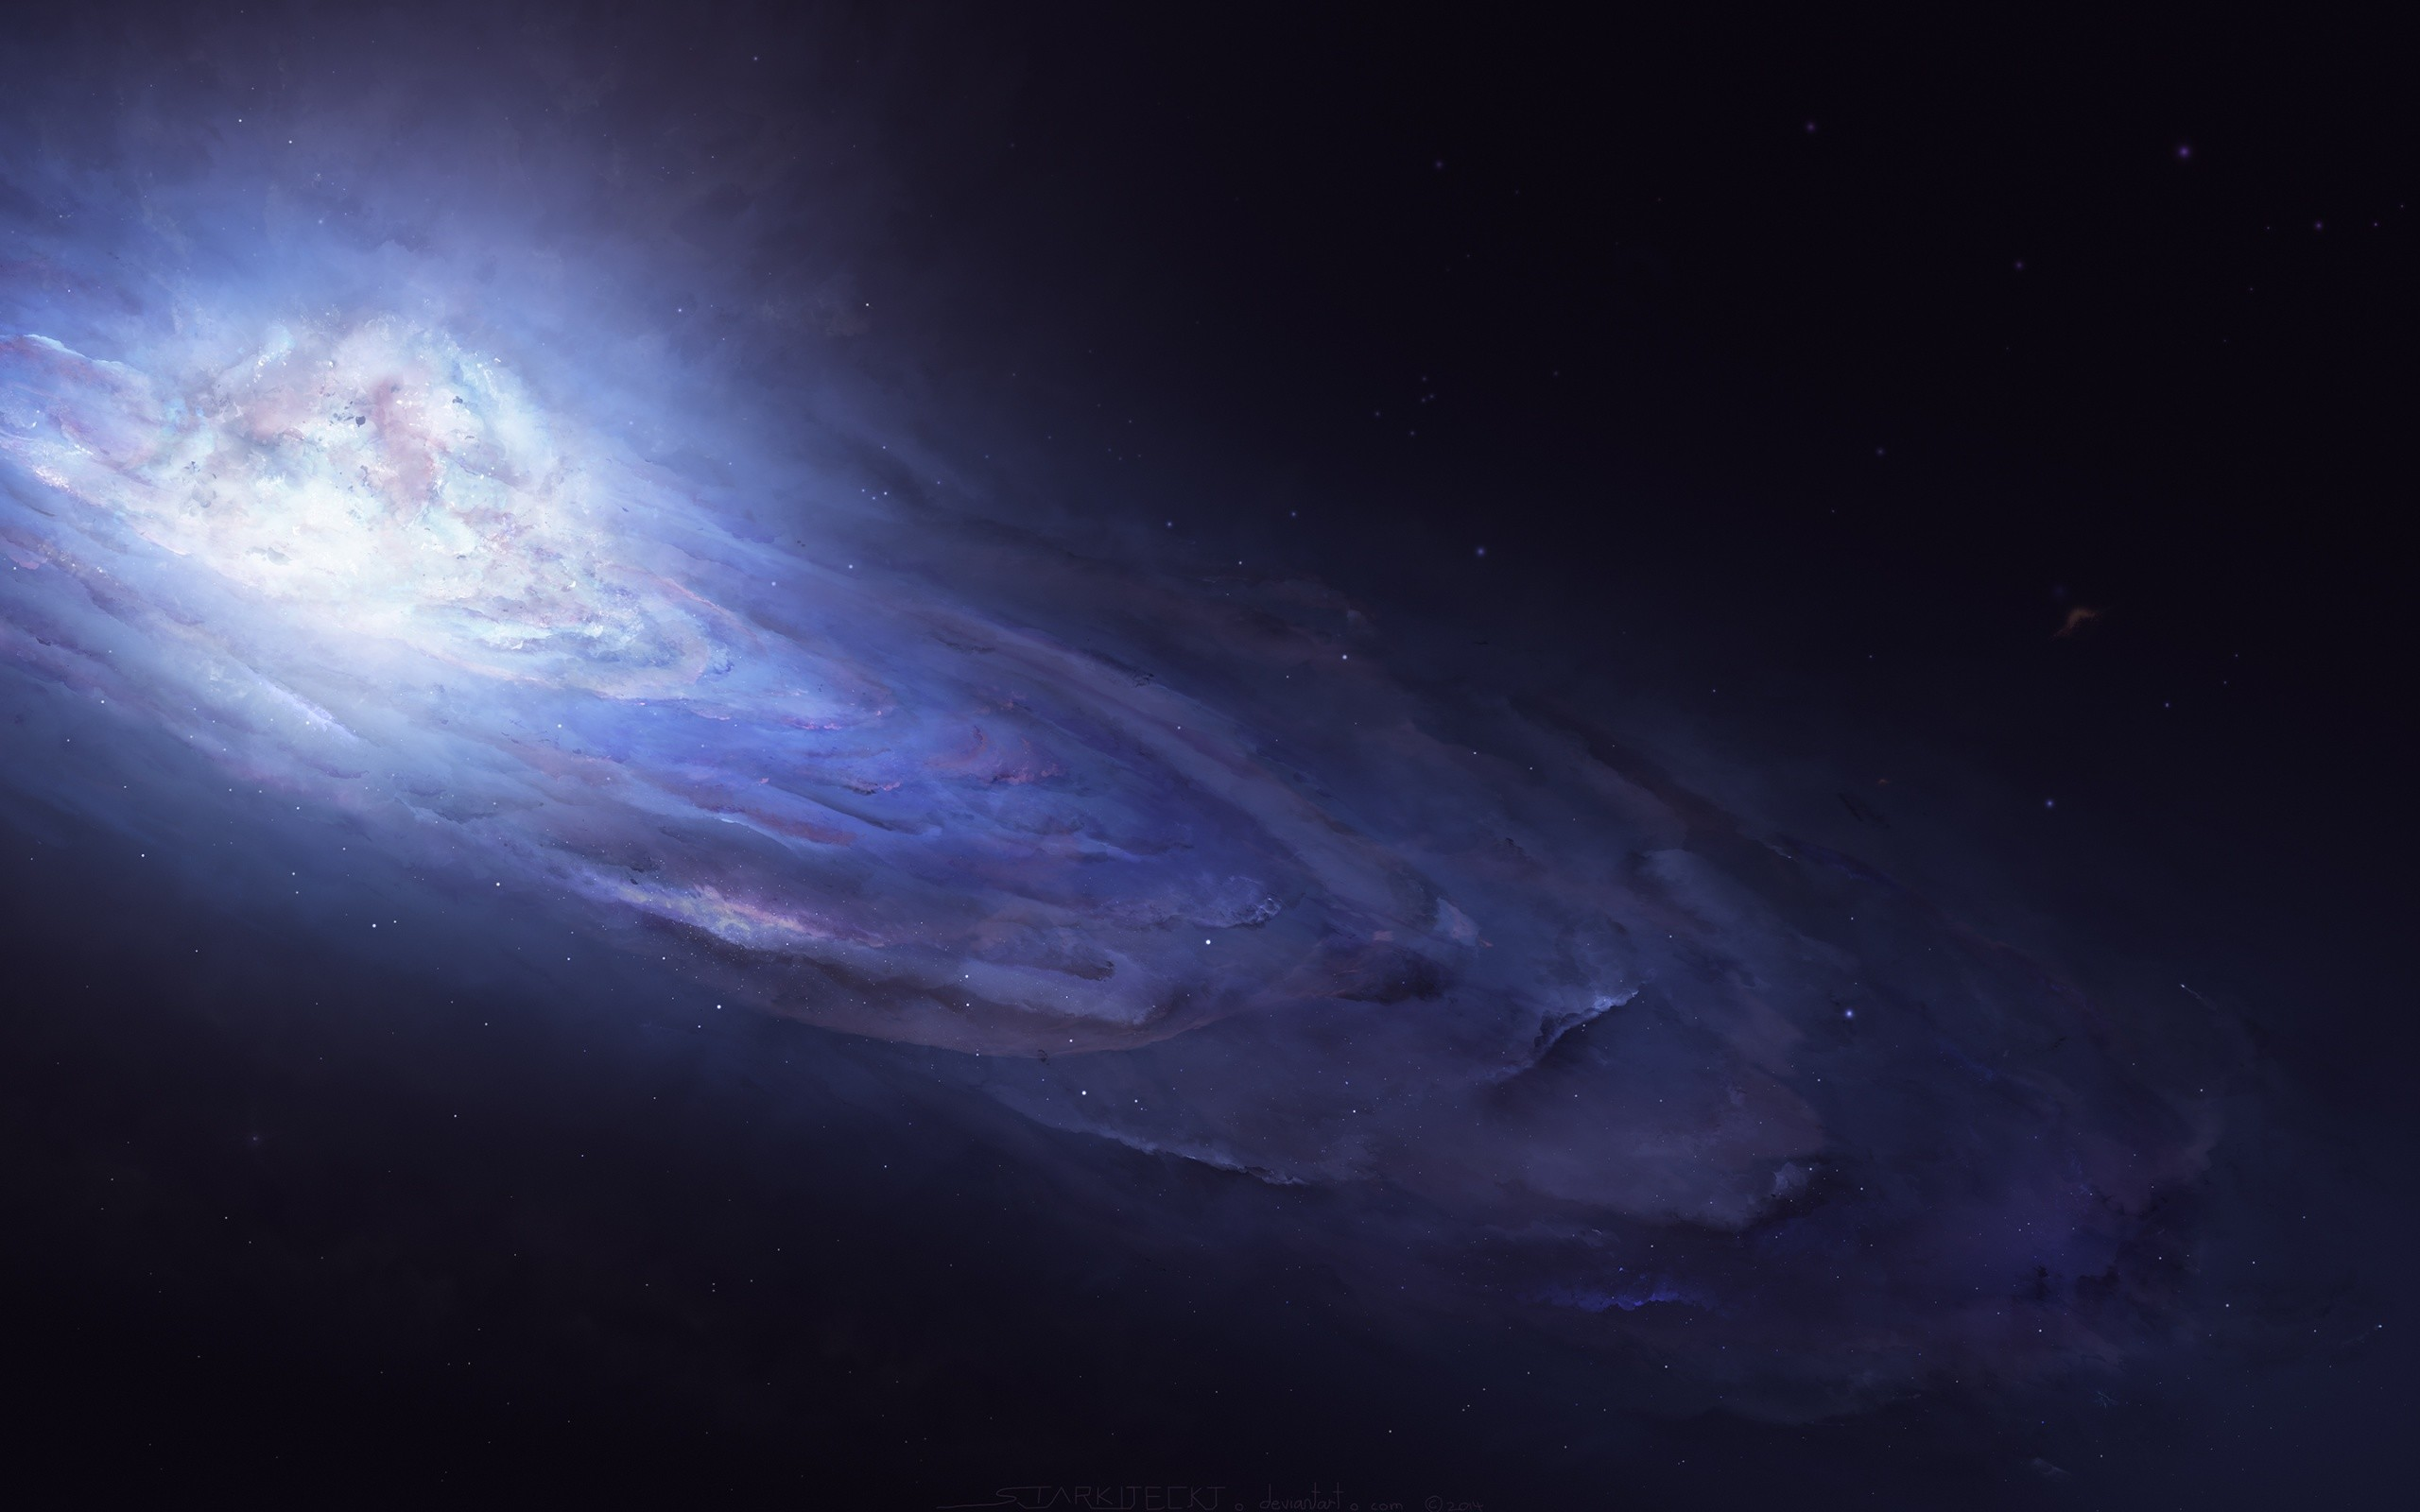 Space Astronomy – ExciteWallpapers.com